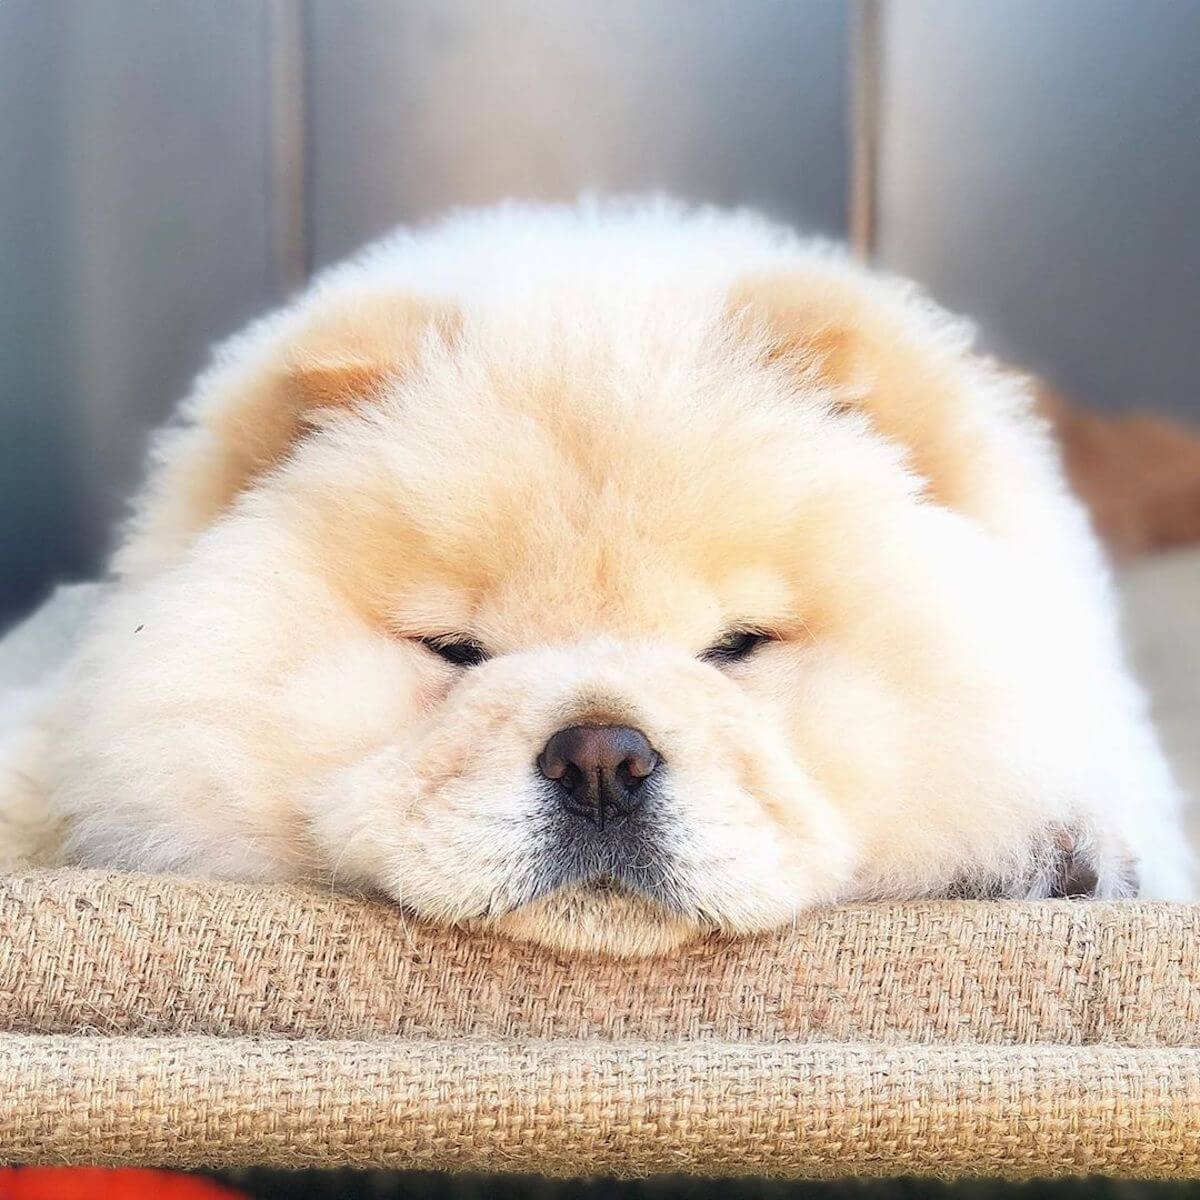 instagram @thechowcalledziggy chow chow face resting